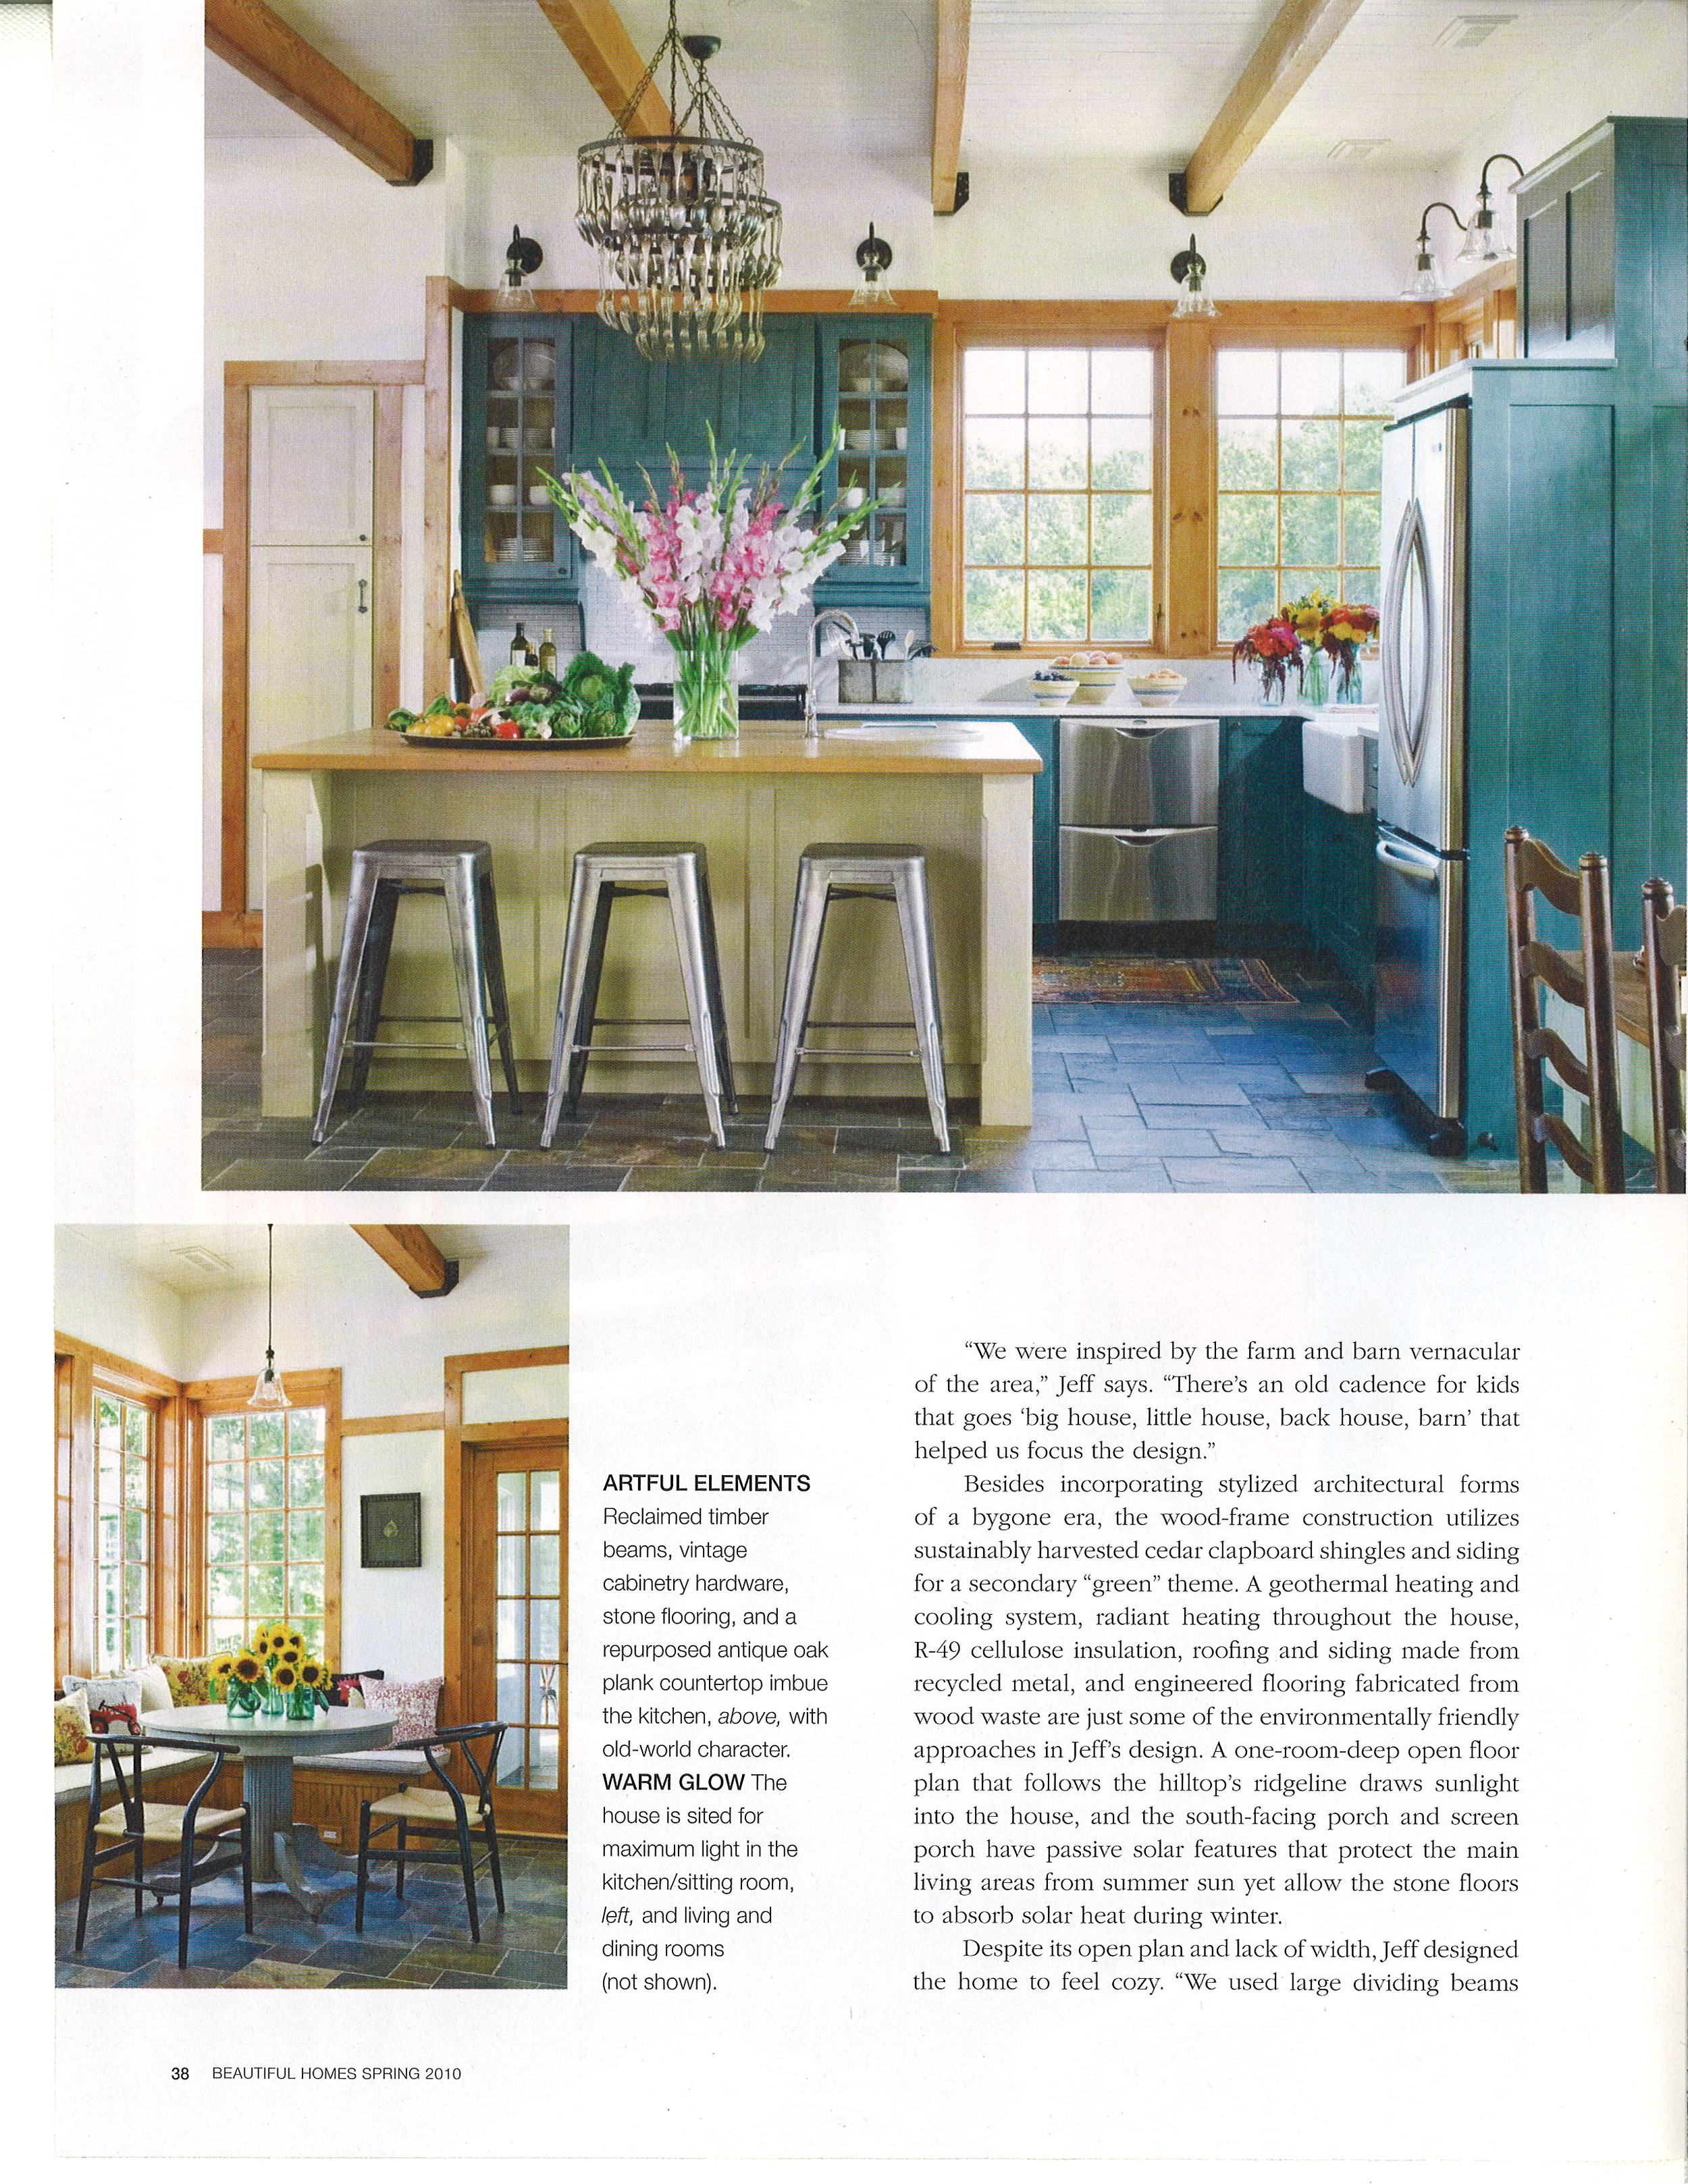 2010Spring_BeautifulHomes_FireflyHill_Page_08.jpg